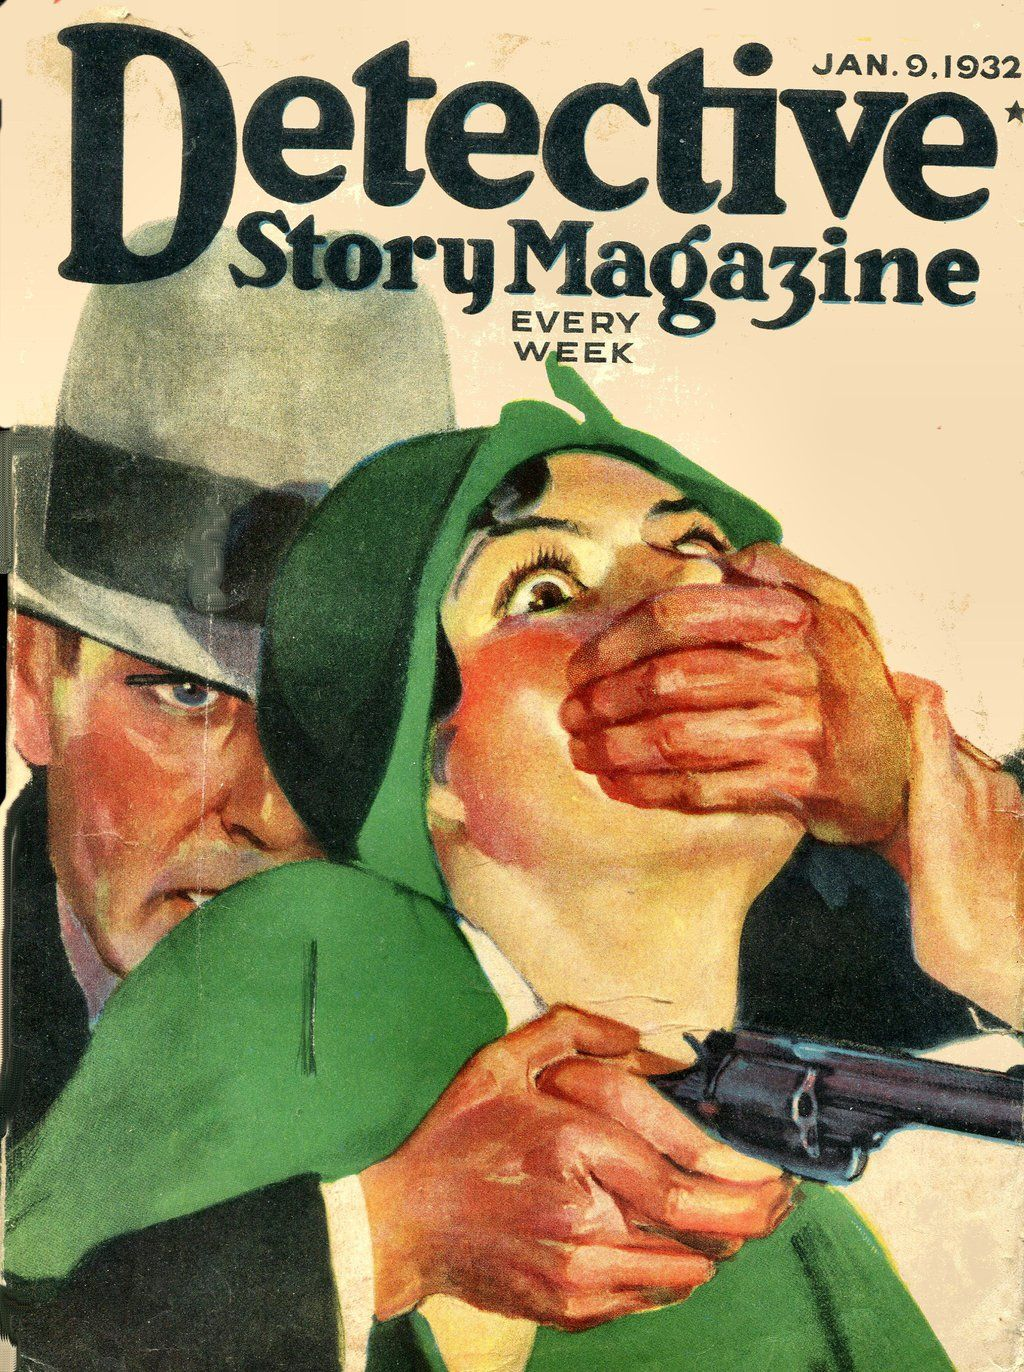 Pin On Bizarro Pulp Art- 18+ For Nudity And General